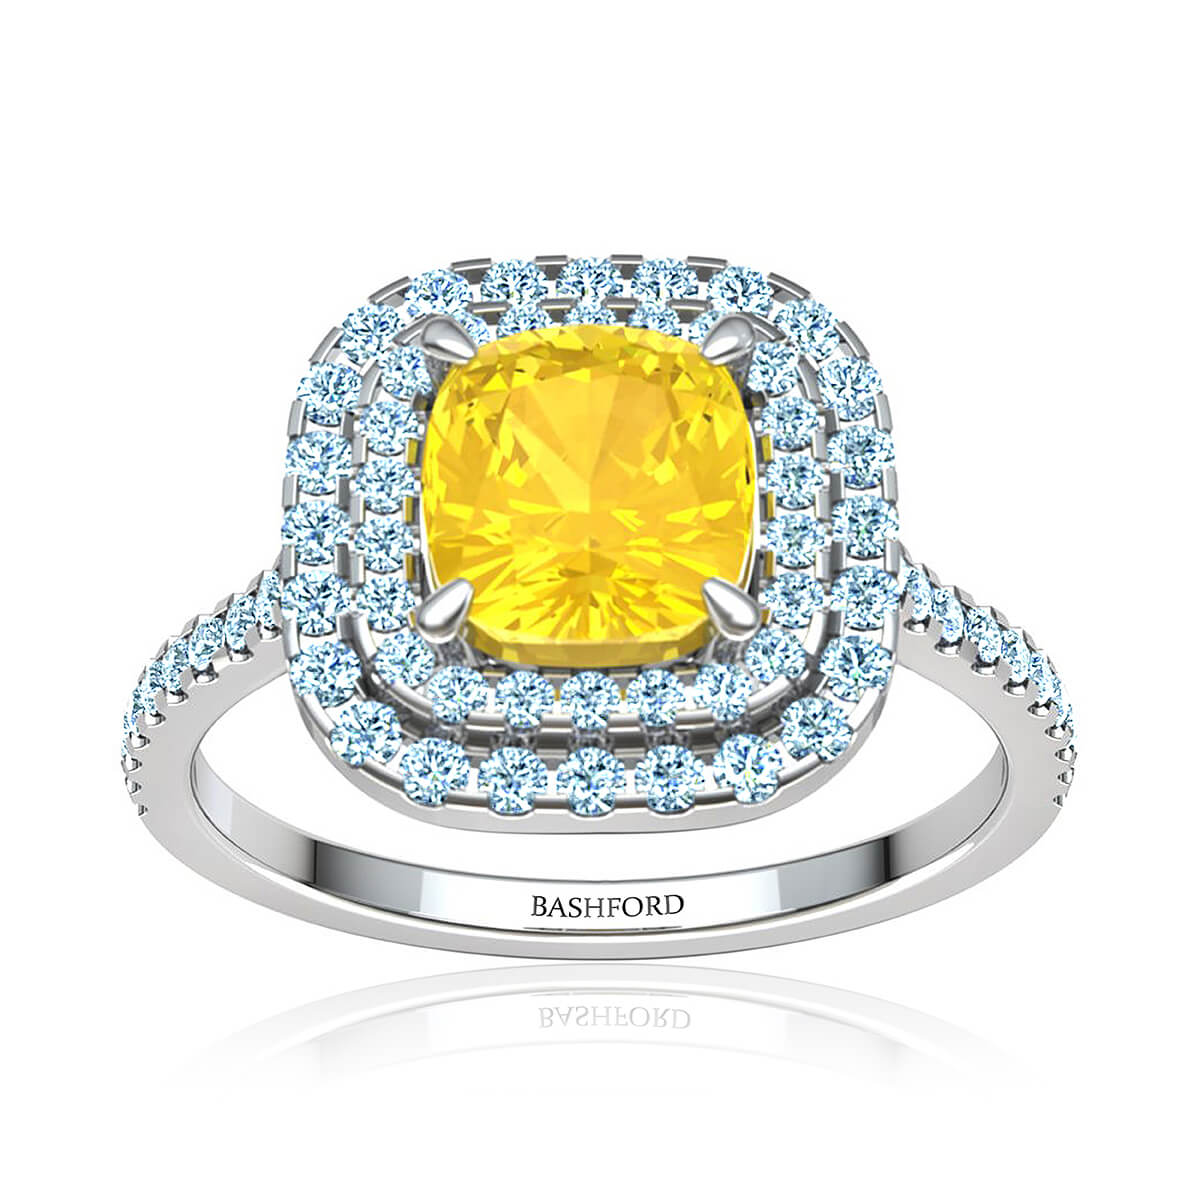 Mariposa Sapphire Ring (with 7x7 Cushion Yellow Sapphire)